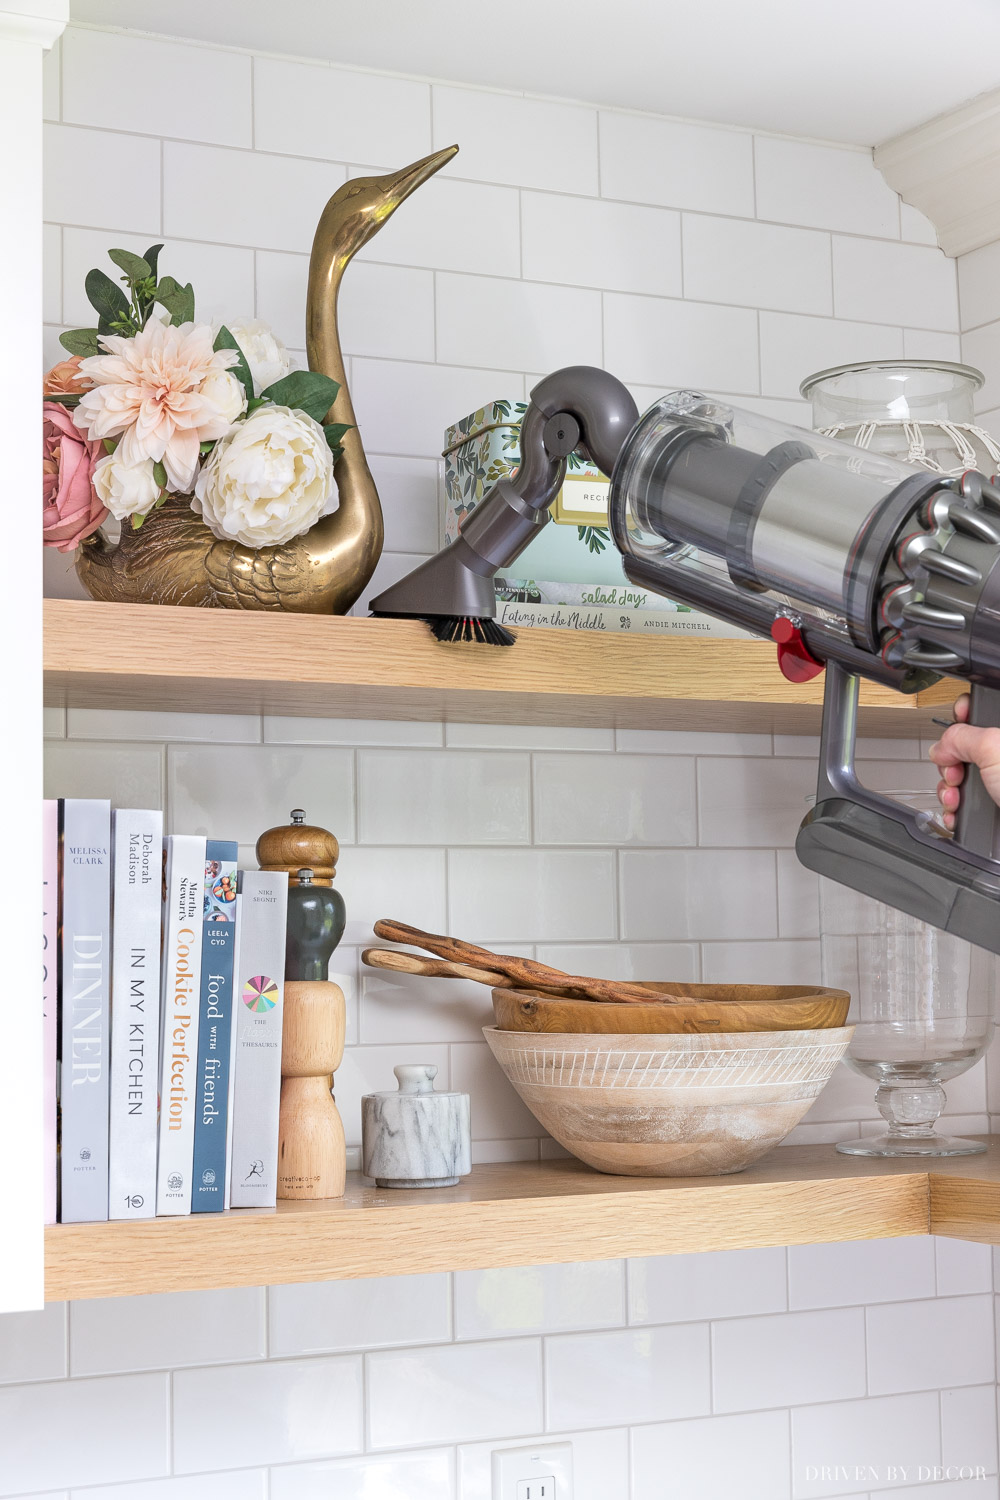 I LOVE this attachment for my Dyson cordless - makes it so easy to dust ledges and shelves!